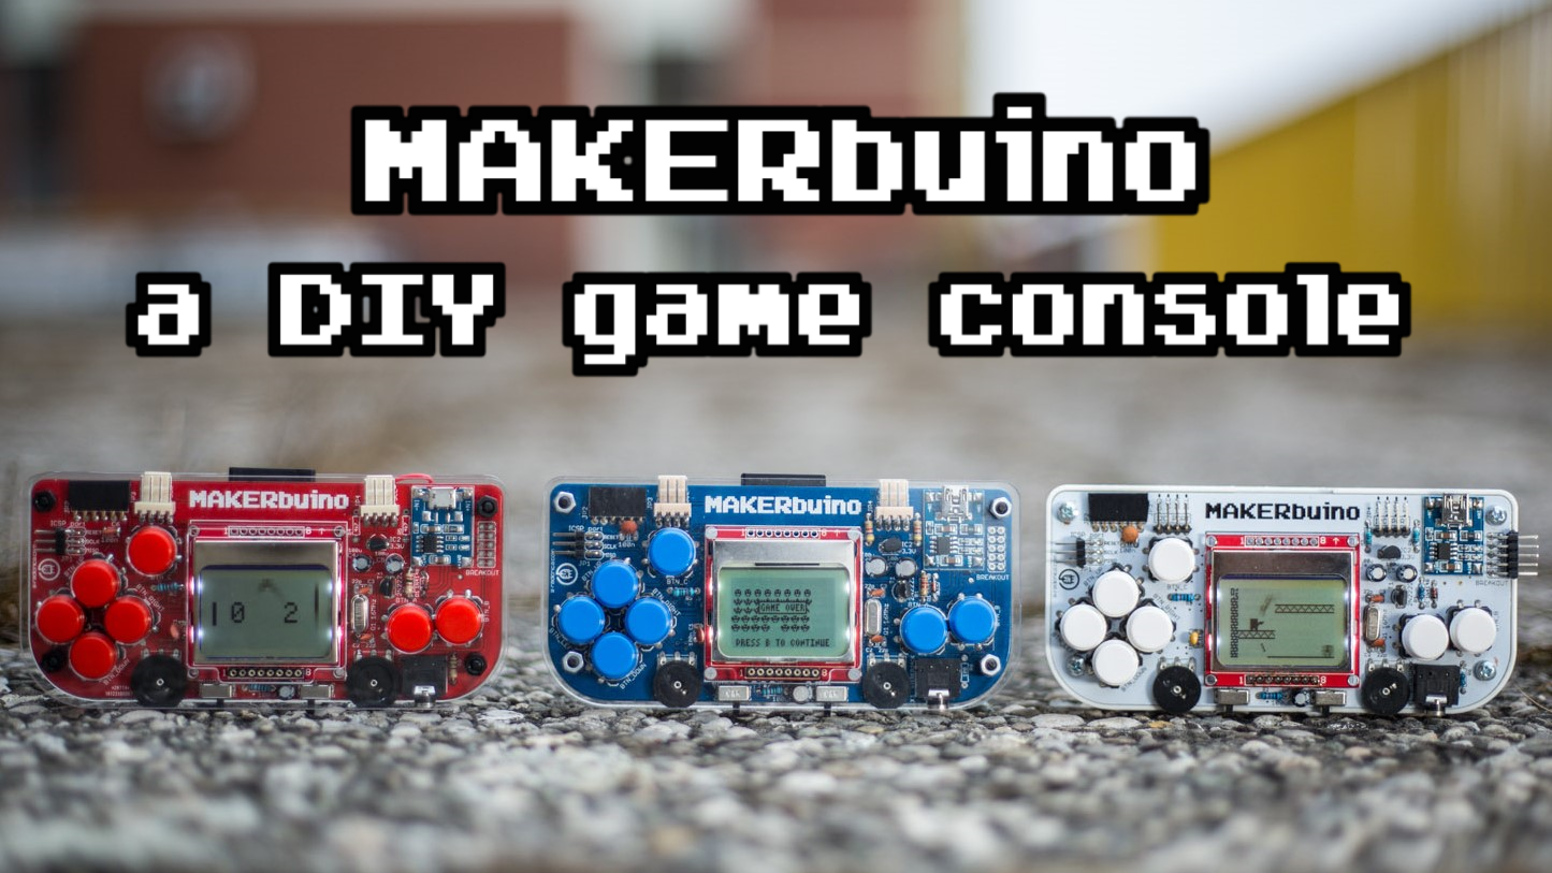 MAKERbuino is a handheld retro gaming device that you can build yourself. It's 8-bit, fun, educational and hackable.